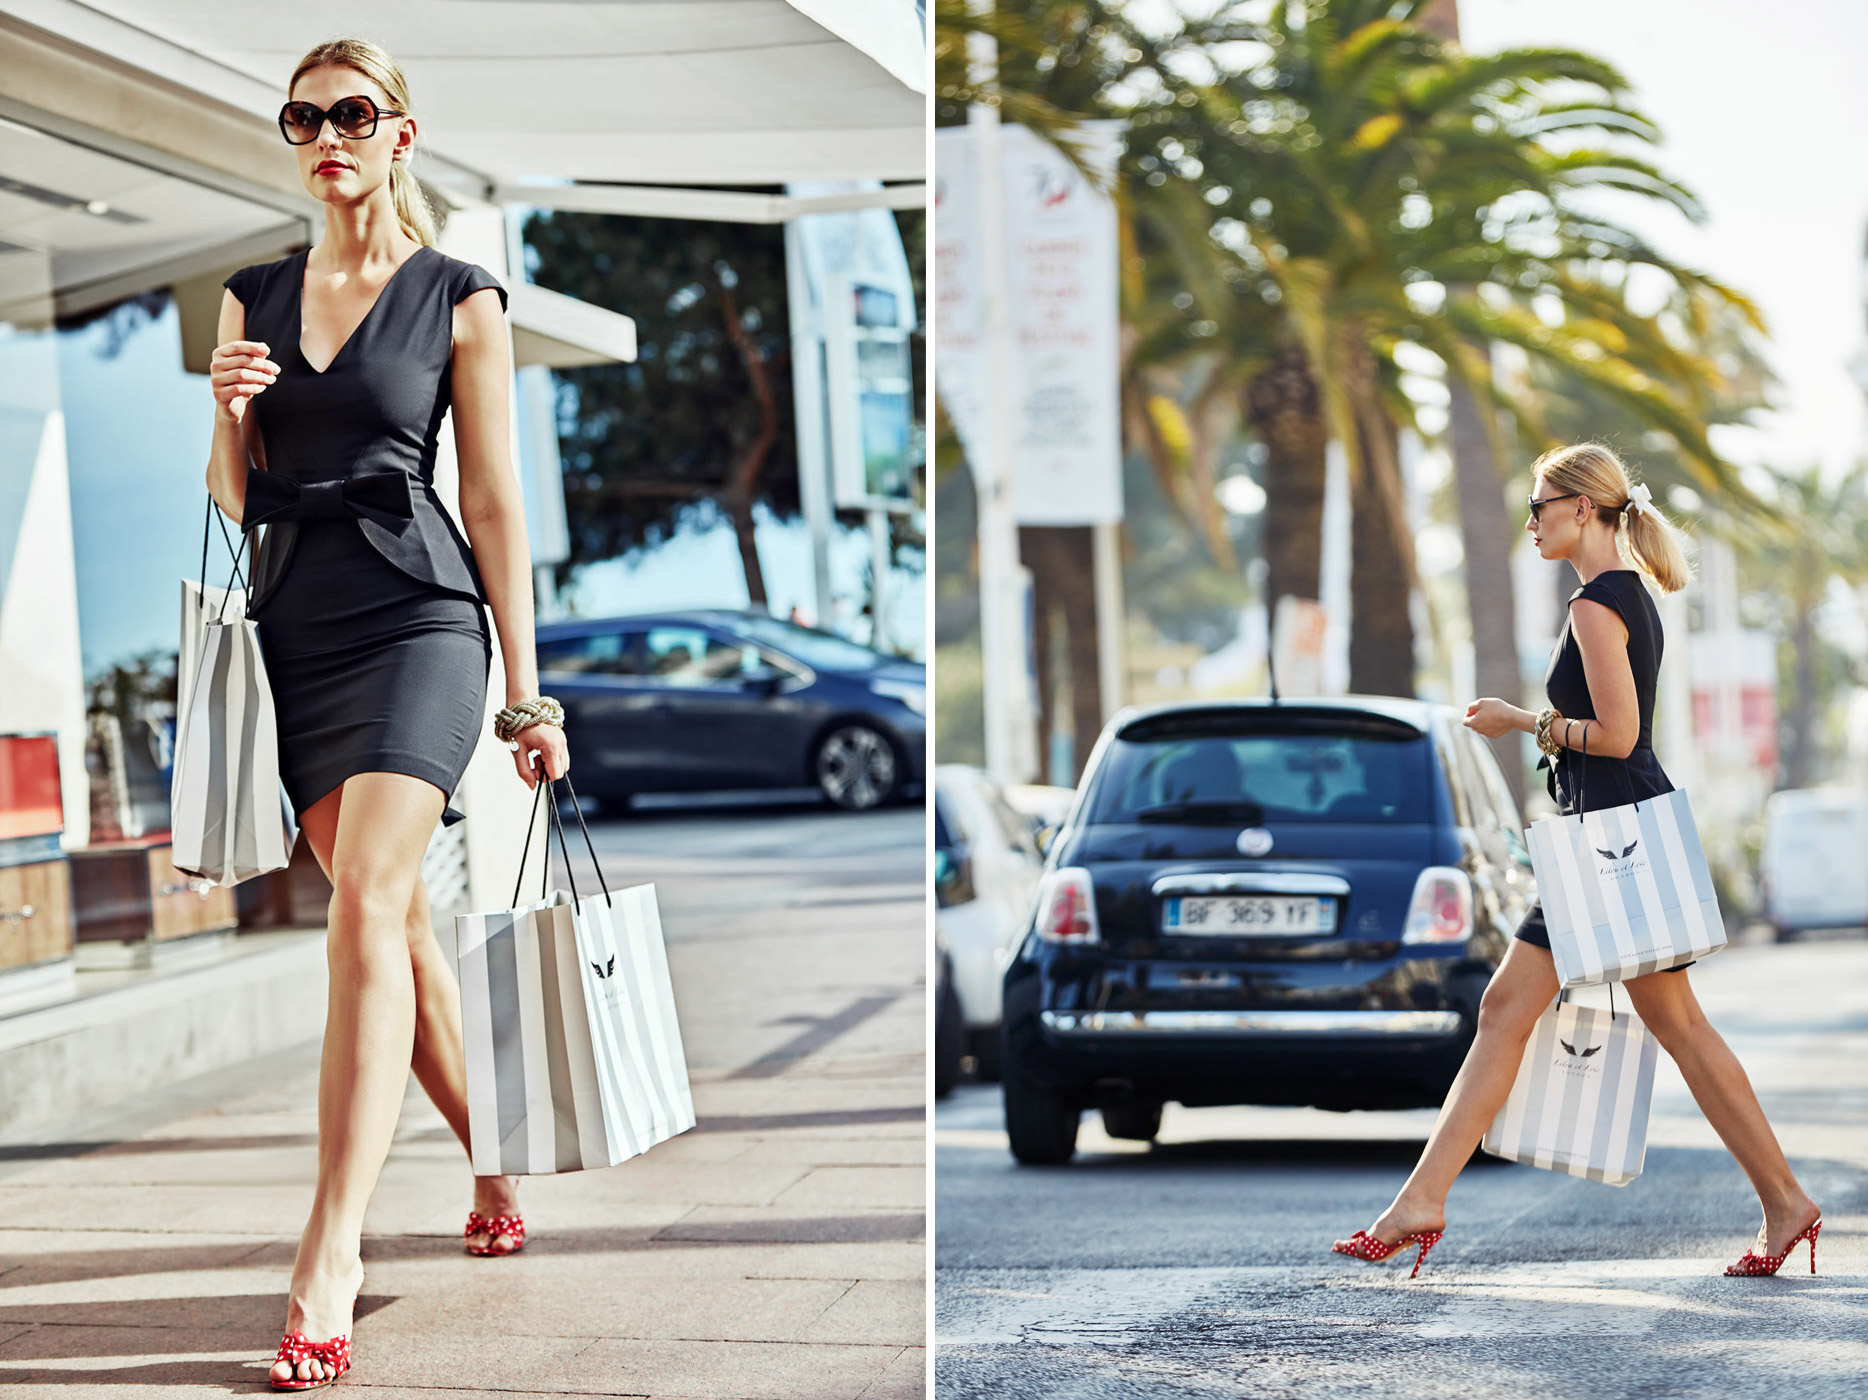 Lifestyle photographer - stylish woman walking in Cannes, France carrying shopping bags.  Photographed on Location in Cannes, France for beauty brand.